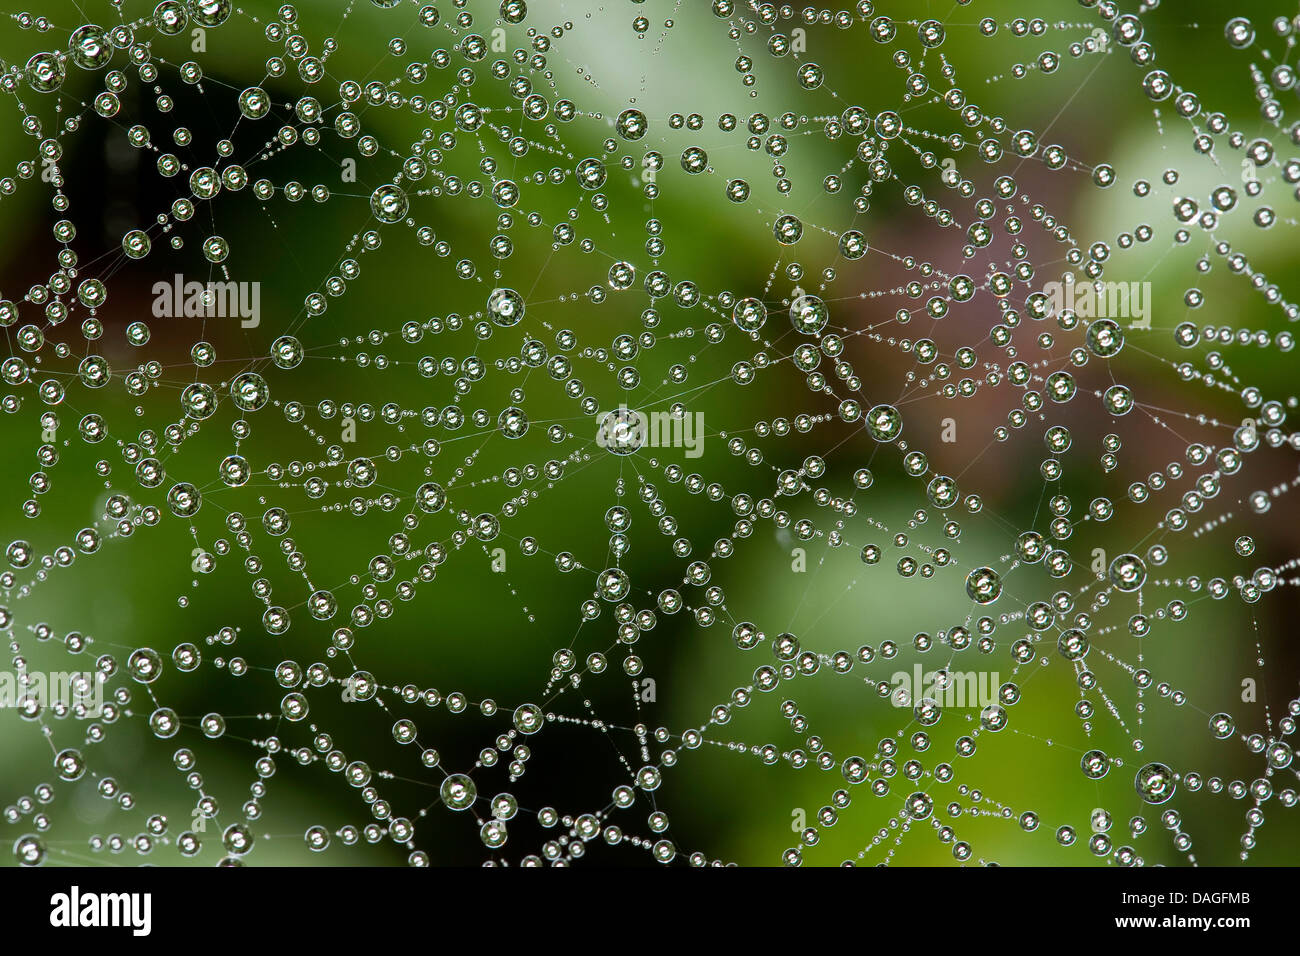 Foglio-web weaver, linea di tessitura spider, Linea weaver (Linyphia triangularis), spiderweb con morningdew, Germania Immagini Stock